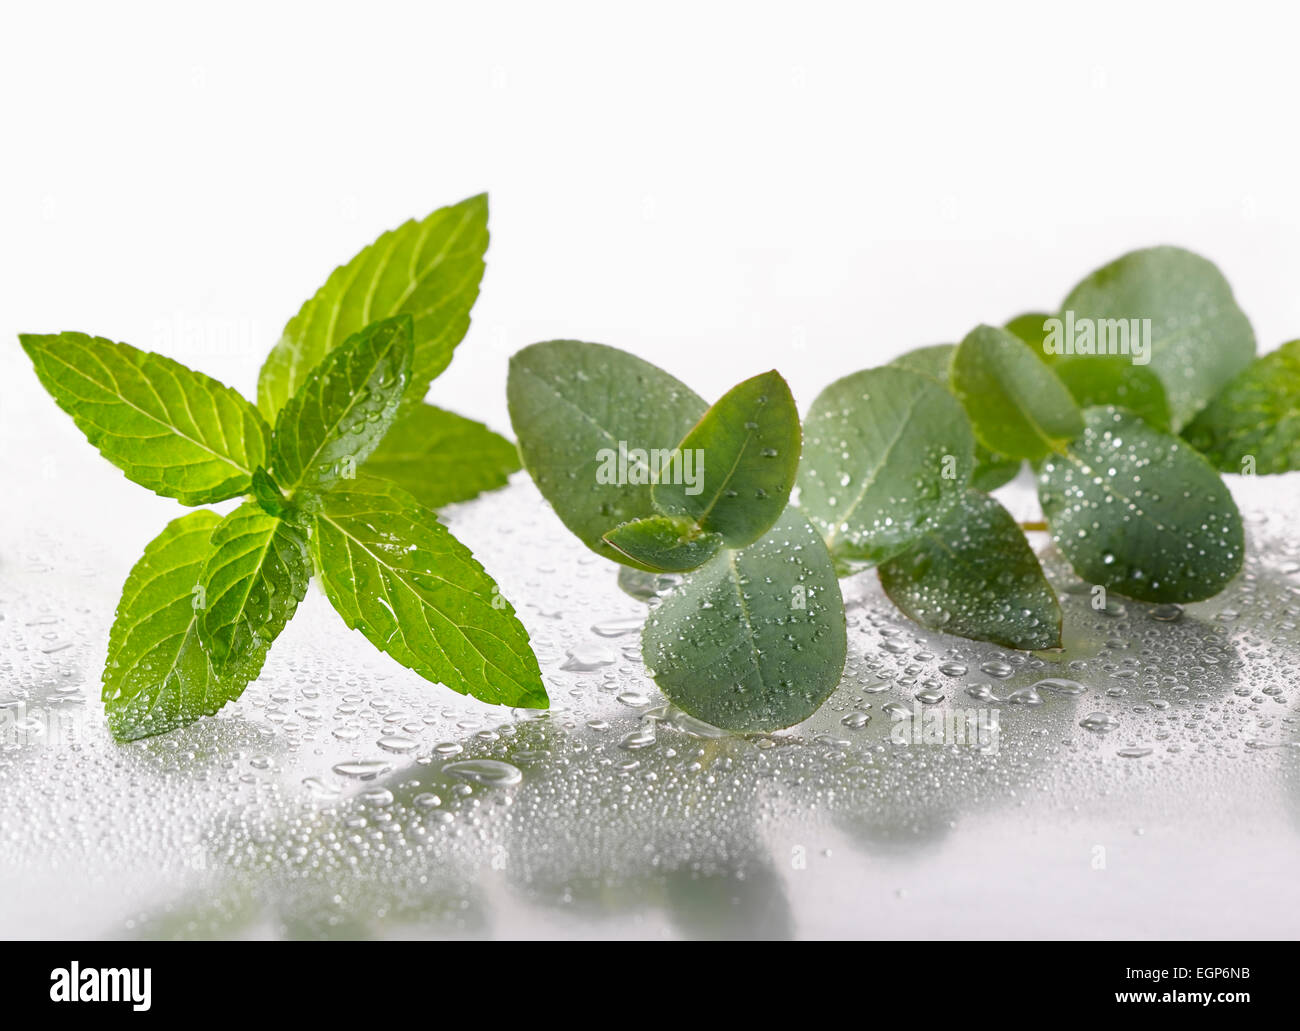 Peppermint, Mentha piperita sprig arranged with Eucalyptus globulus leaves on silver background, and spritzed with - Stock Image